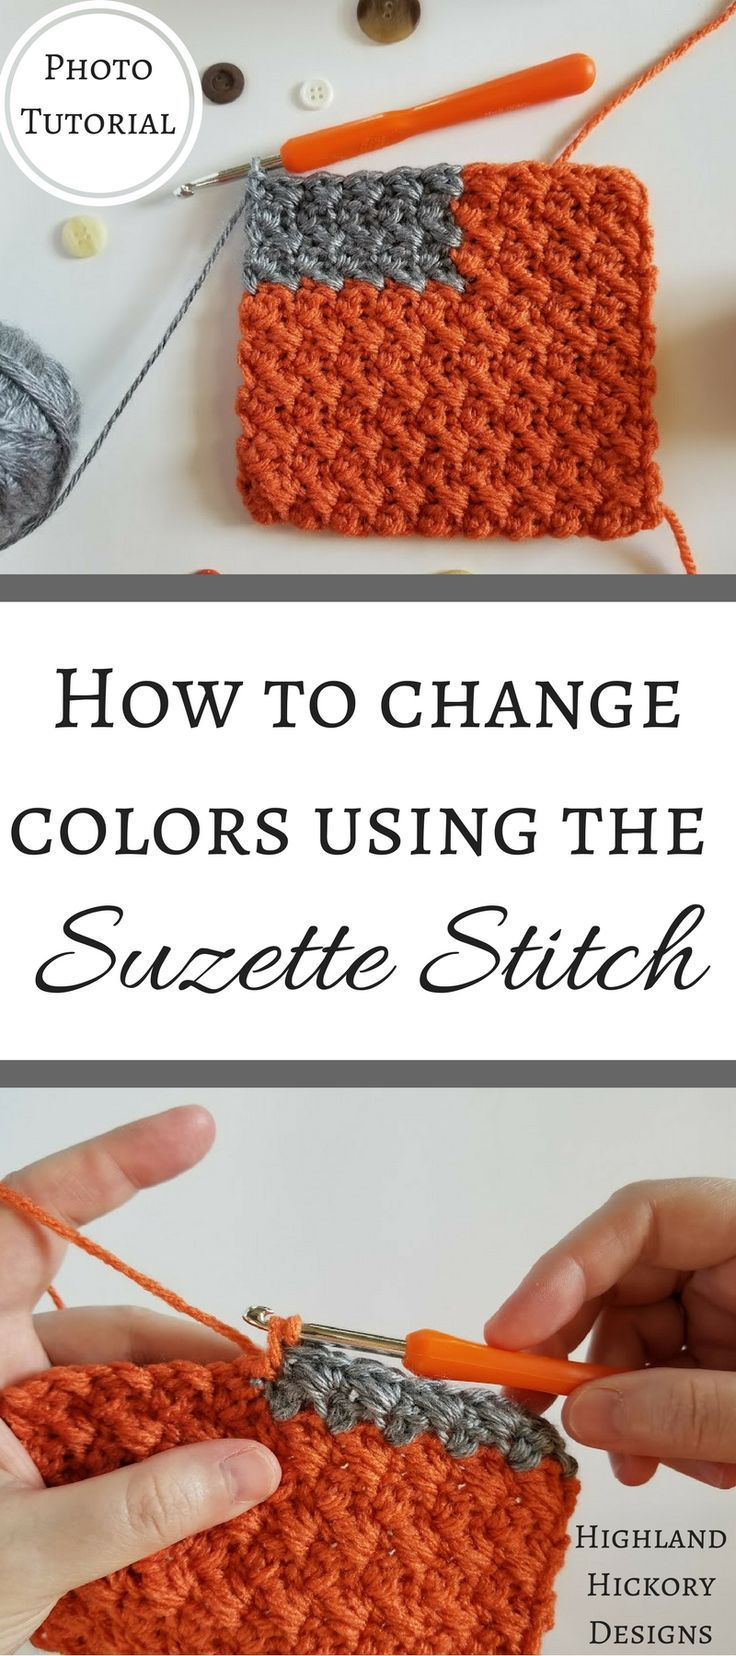 How To Change Colors Using The Suzette Stitch